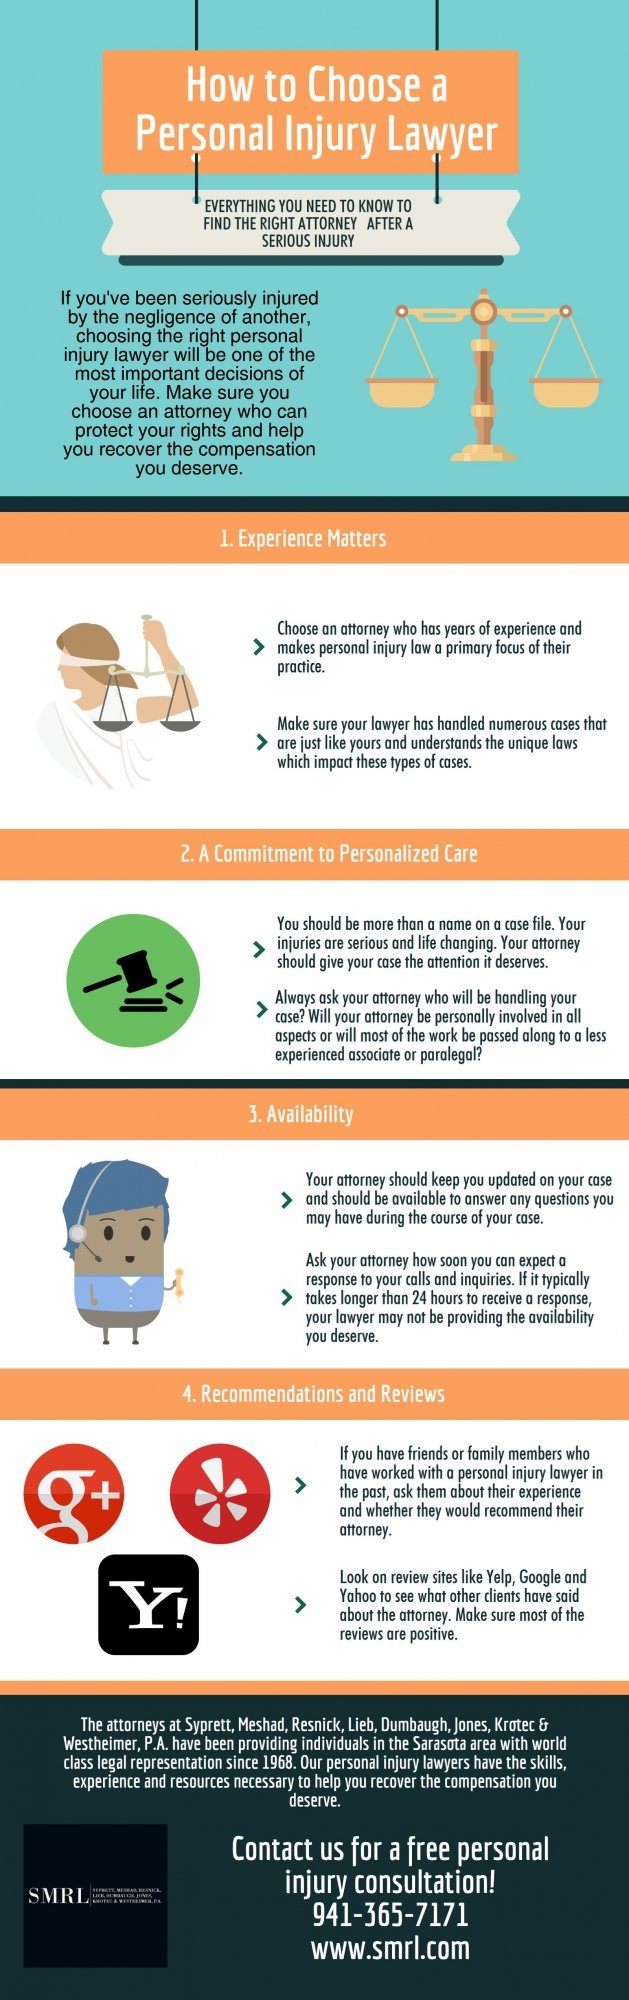 How to Choose a Personal Injury Lawyer (Infographic) choosing a personal injury lawyer infographic